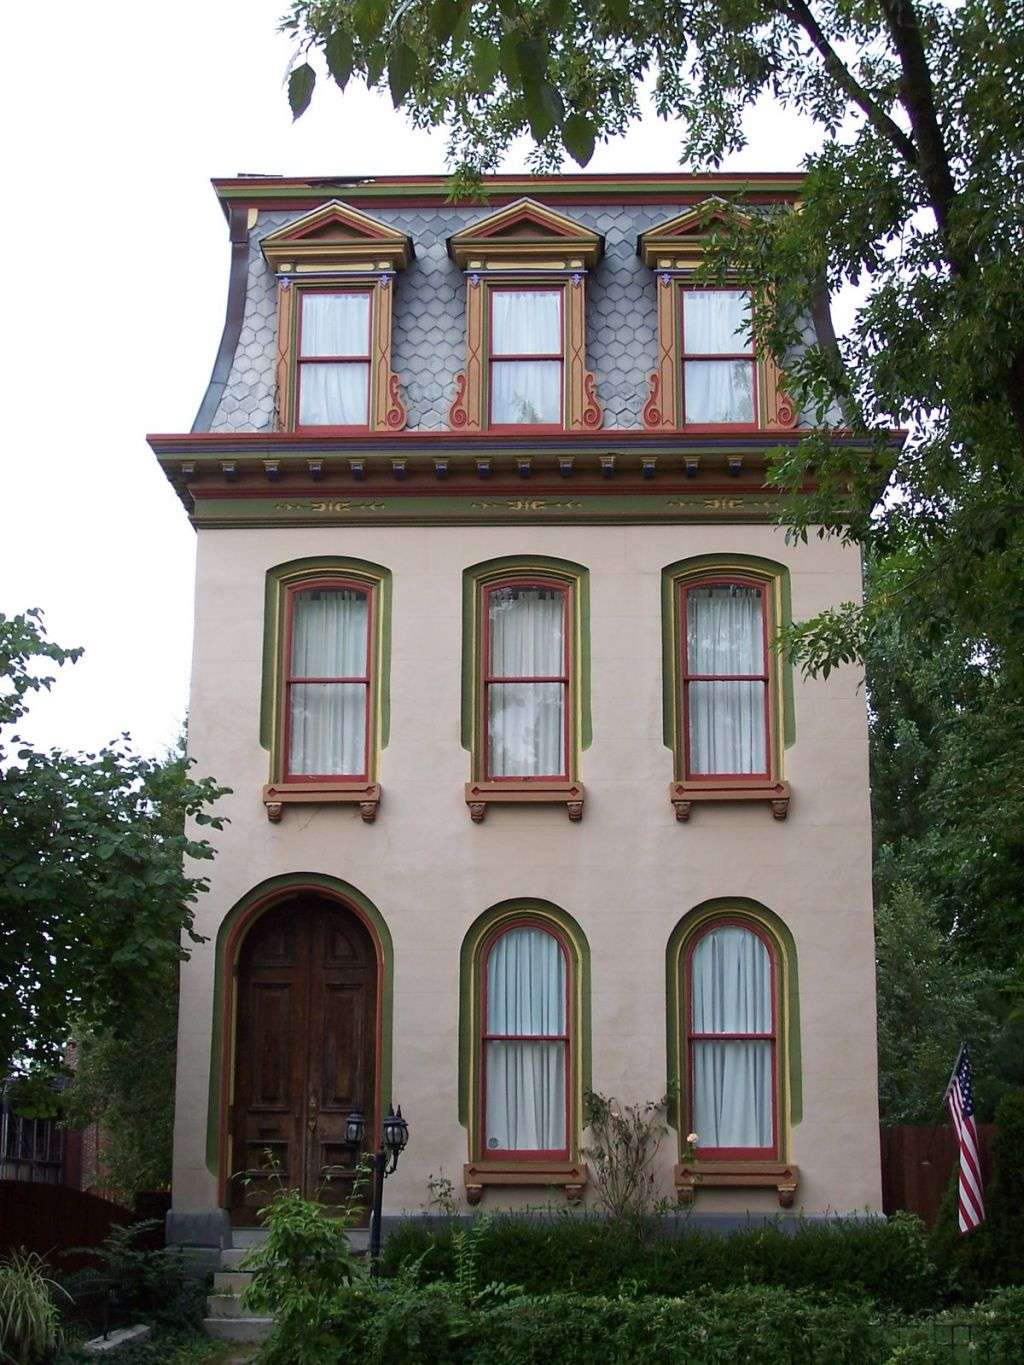 Unique Louis Style Second Empire Italianate